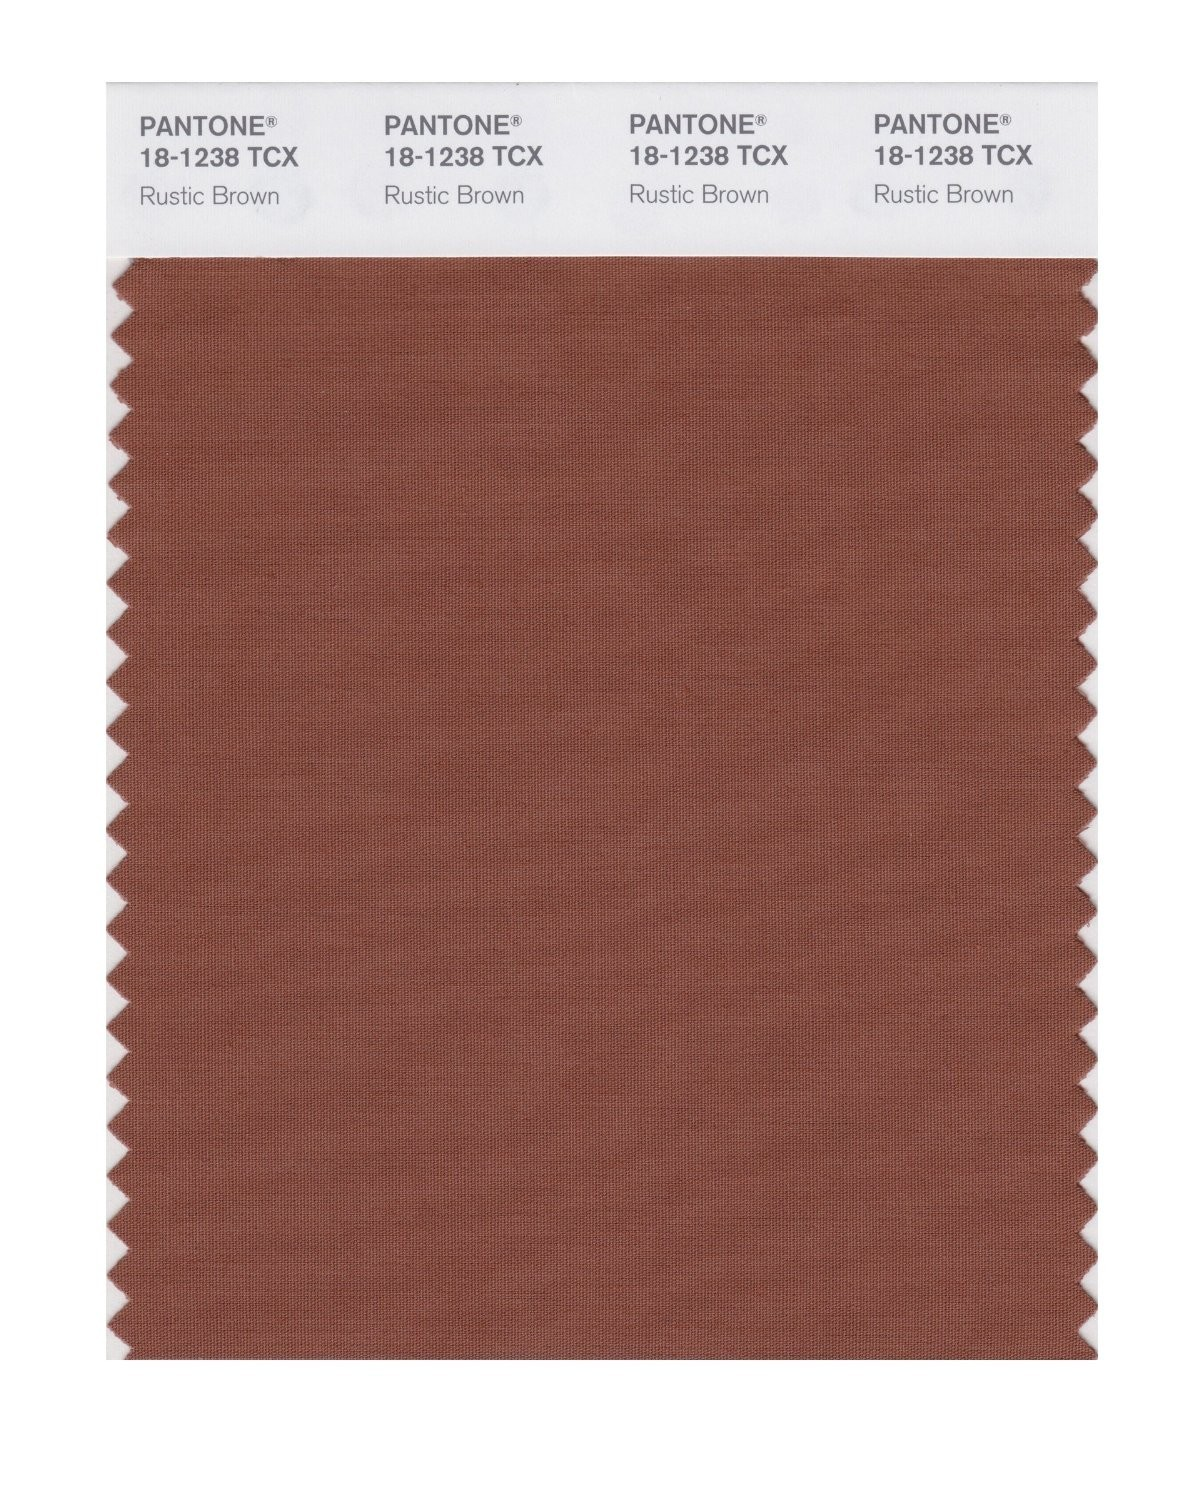 Pantone 18-1238 TCX Swatch Card Rustic Brown